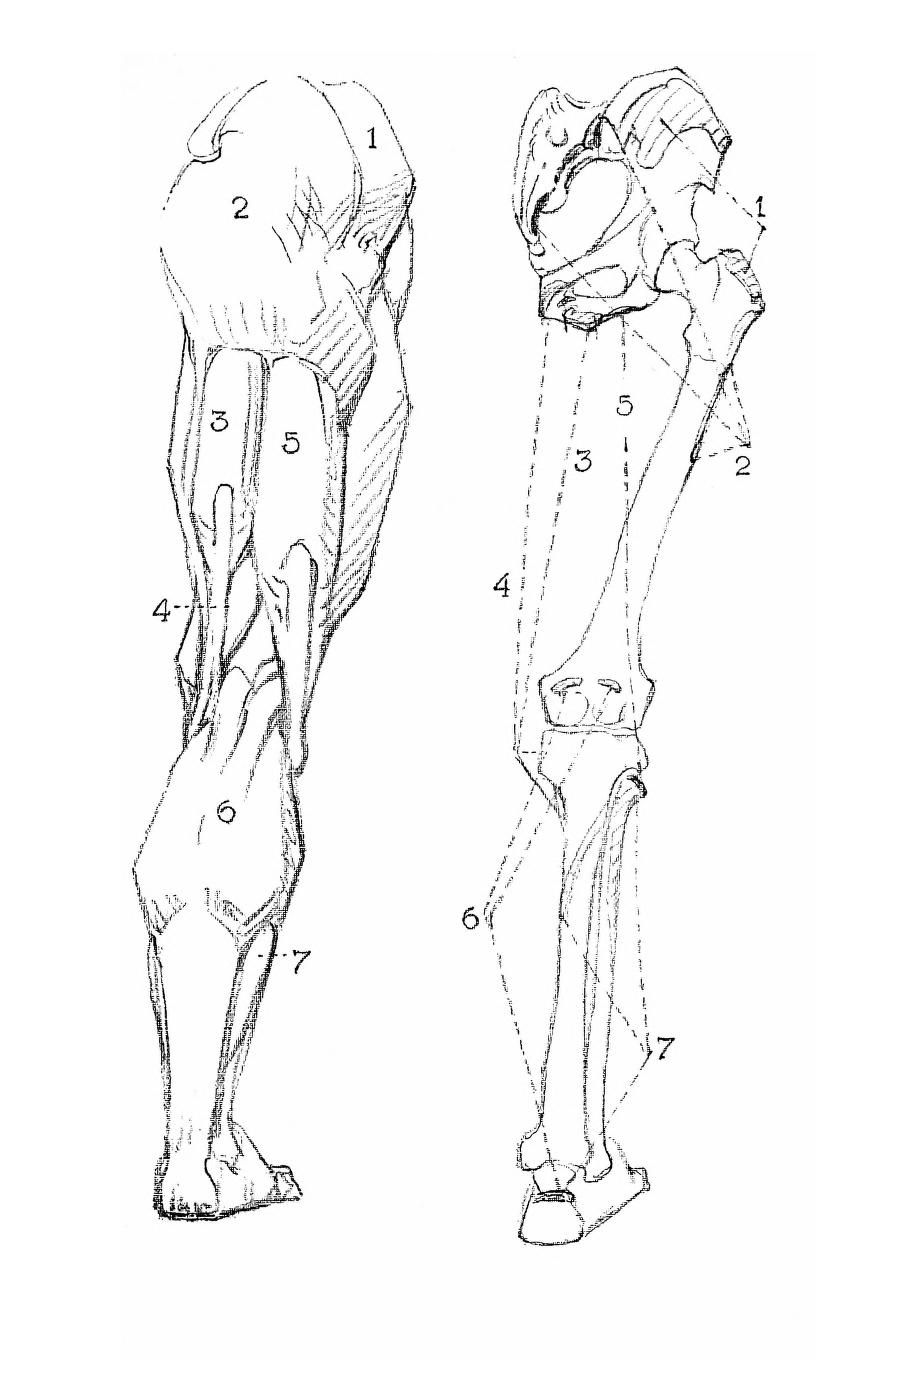 Constructive Anatomy by George Bridgman | AnatoRef - Art Anatomy ...